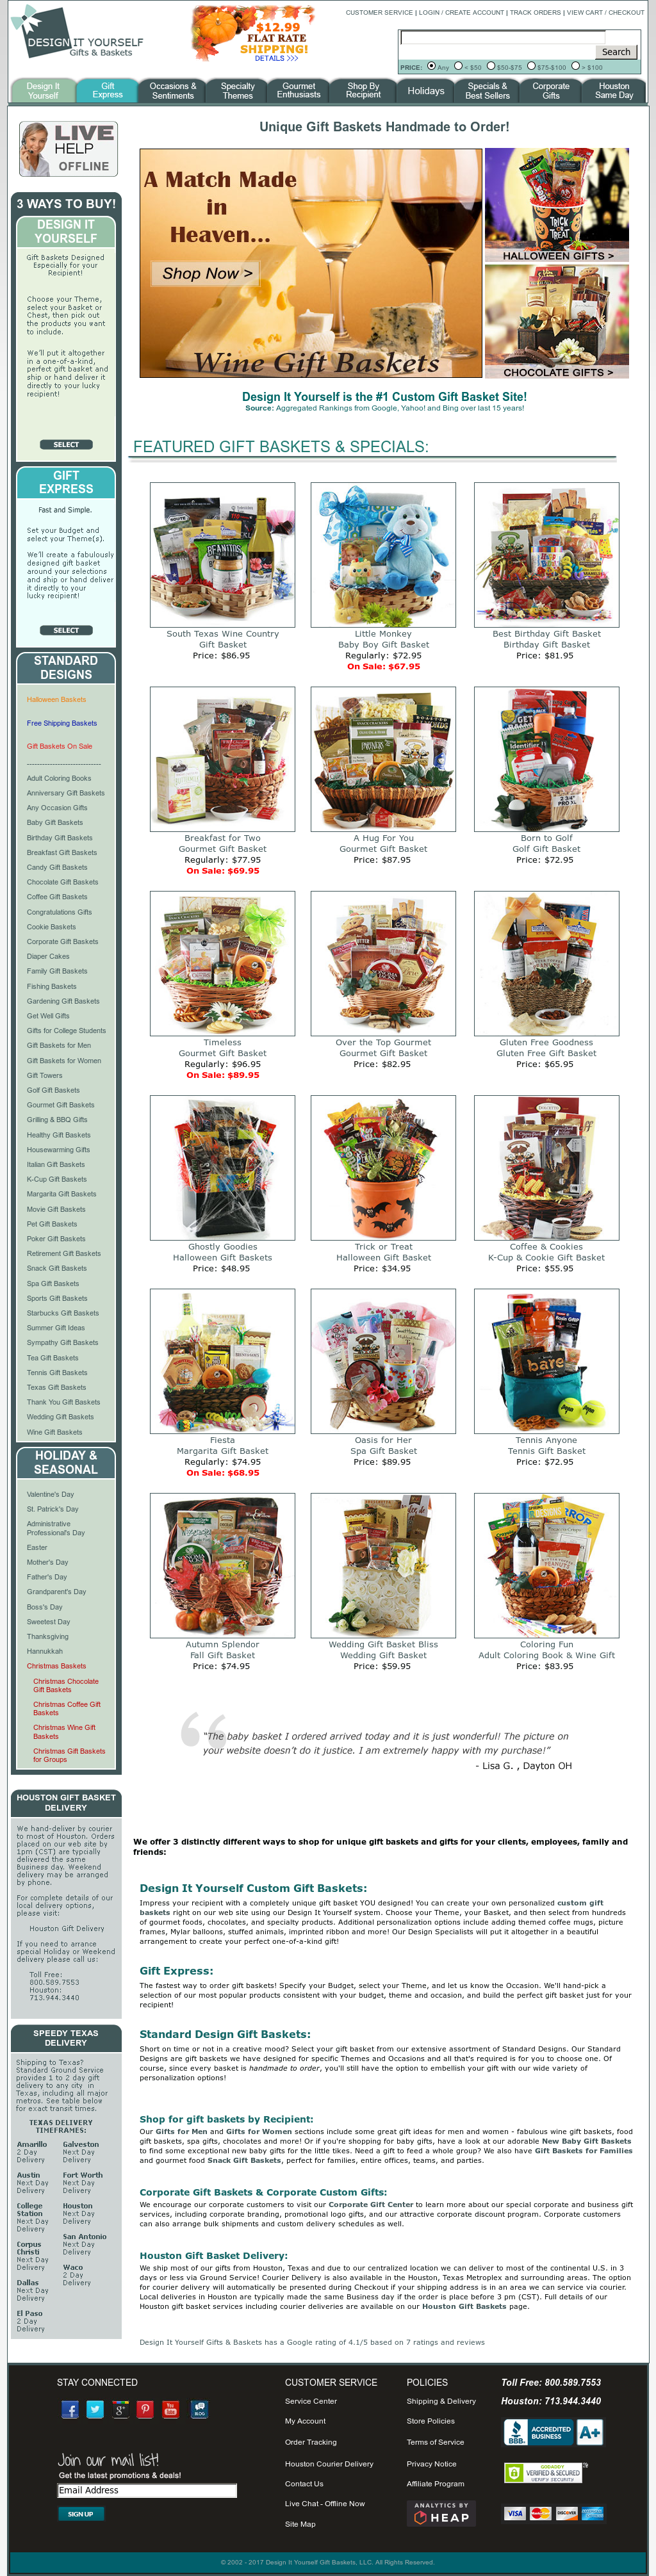 Design It Yourself Gifts Baskets Competitors Revenue And